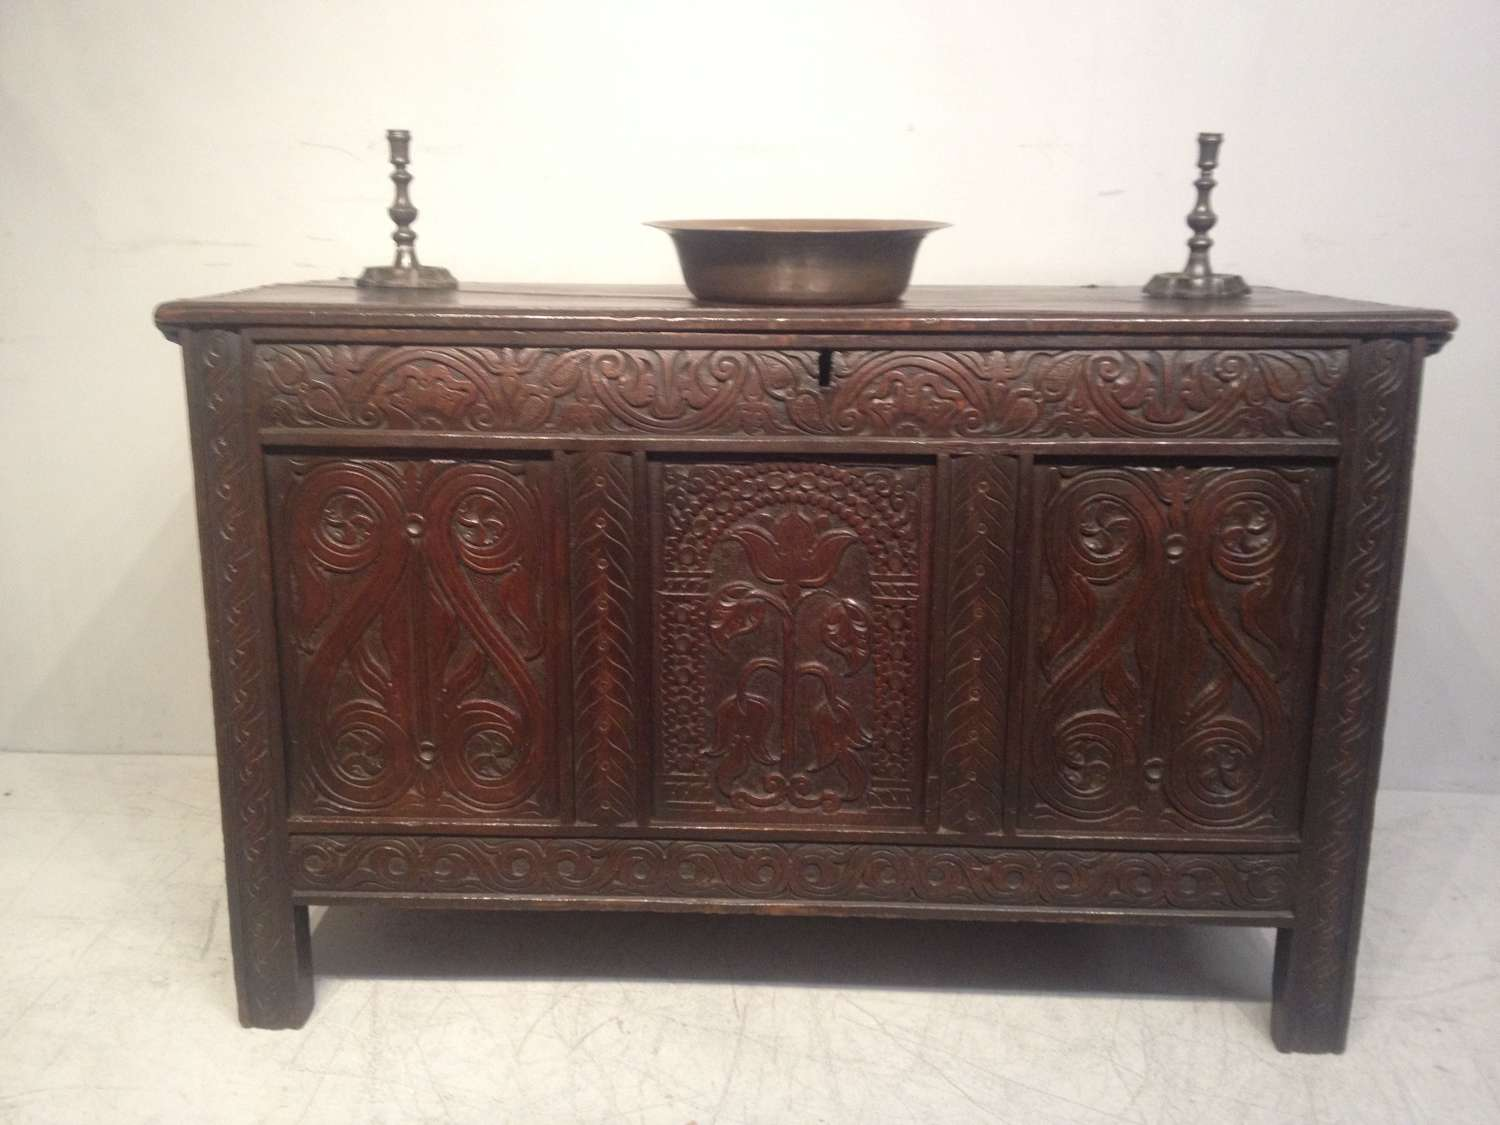 17th century antique West Country carved oak coffer.